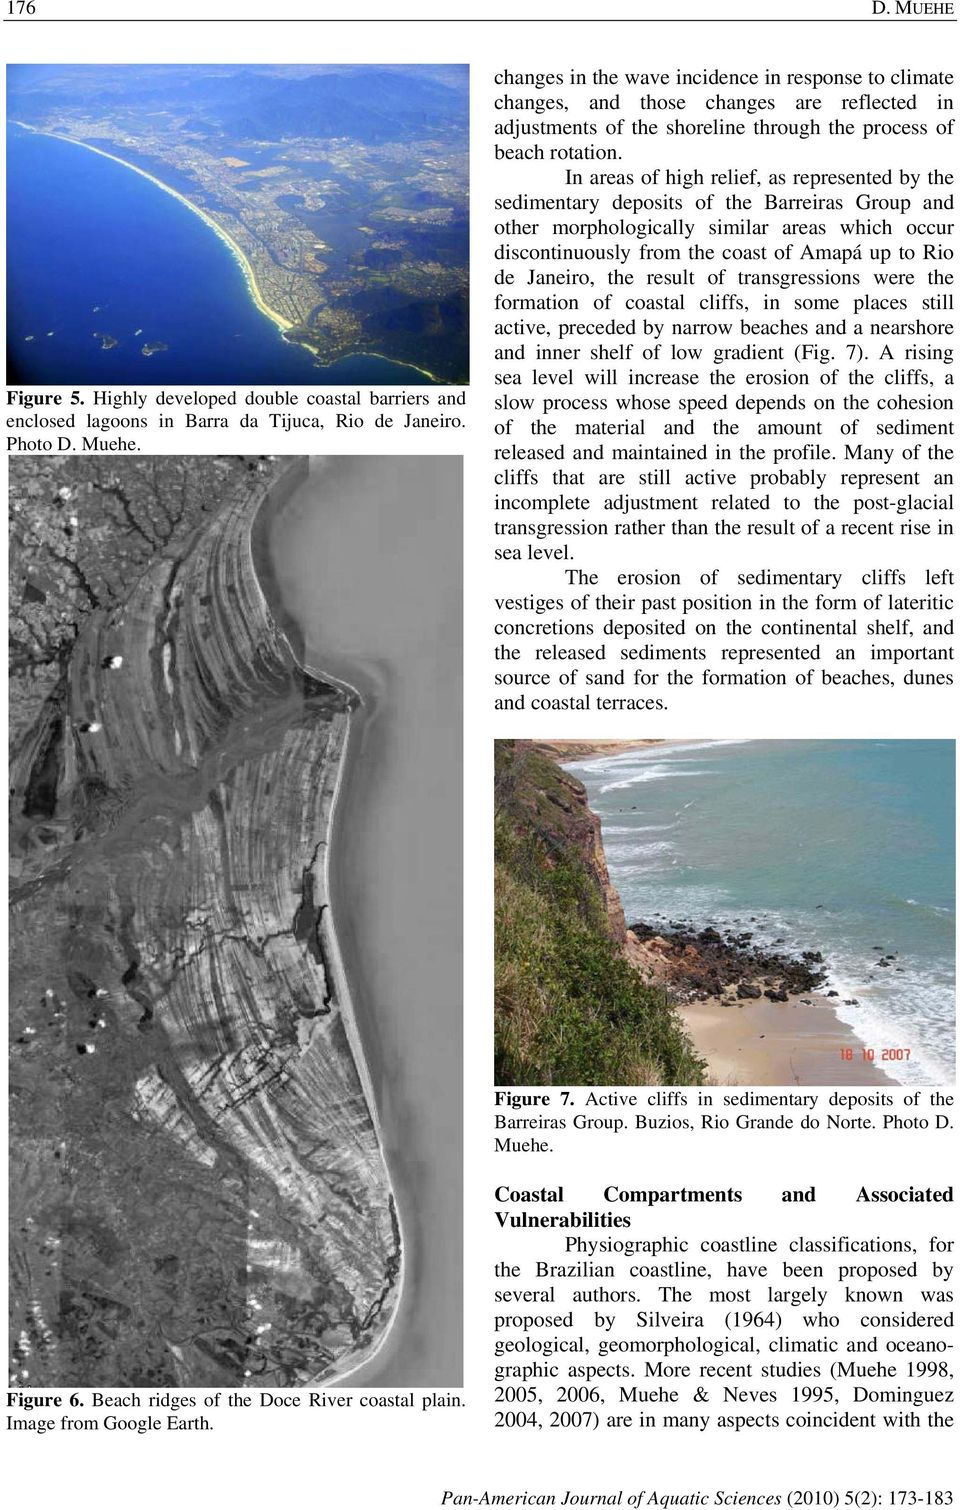 In areas of high relief, as represented by the sedimentary deposits of the Barreiras Group and other morphologically similar areas which occur discontinuously from the coast of Amapá up to Rio de